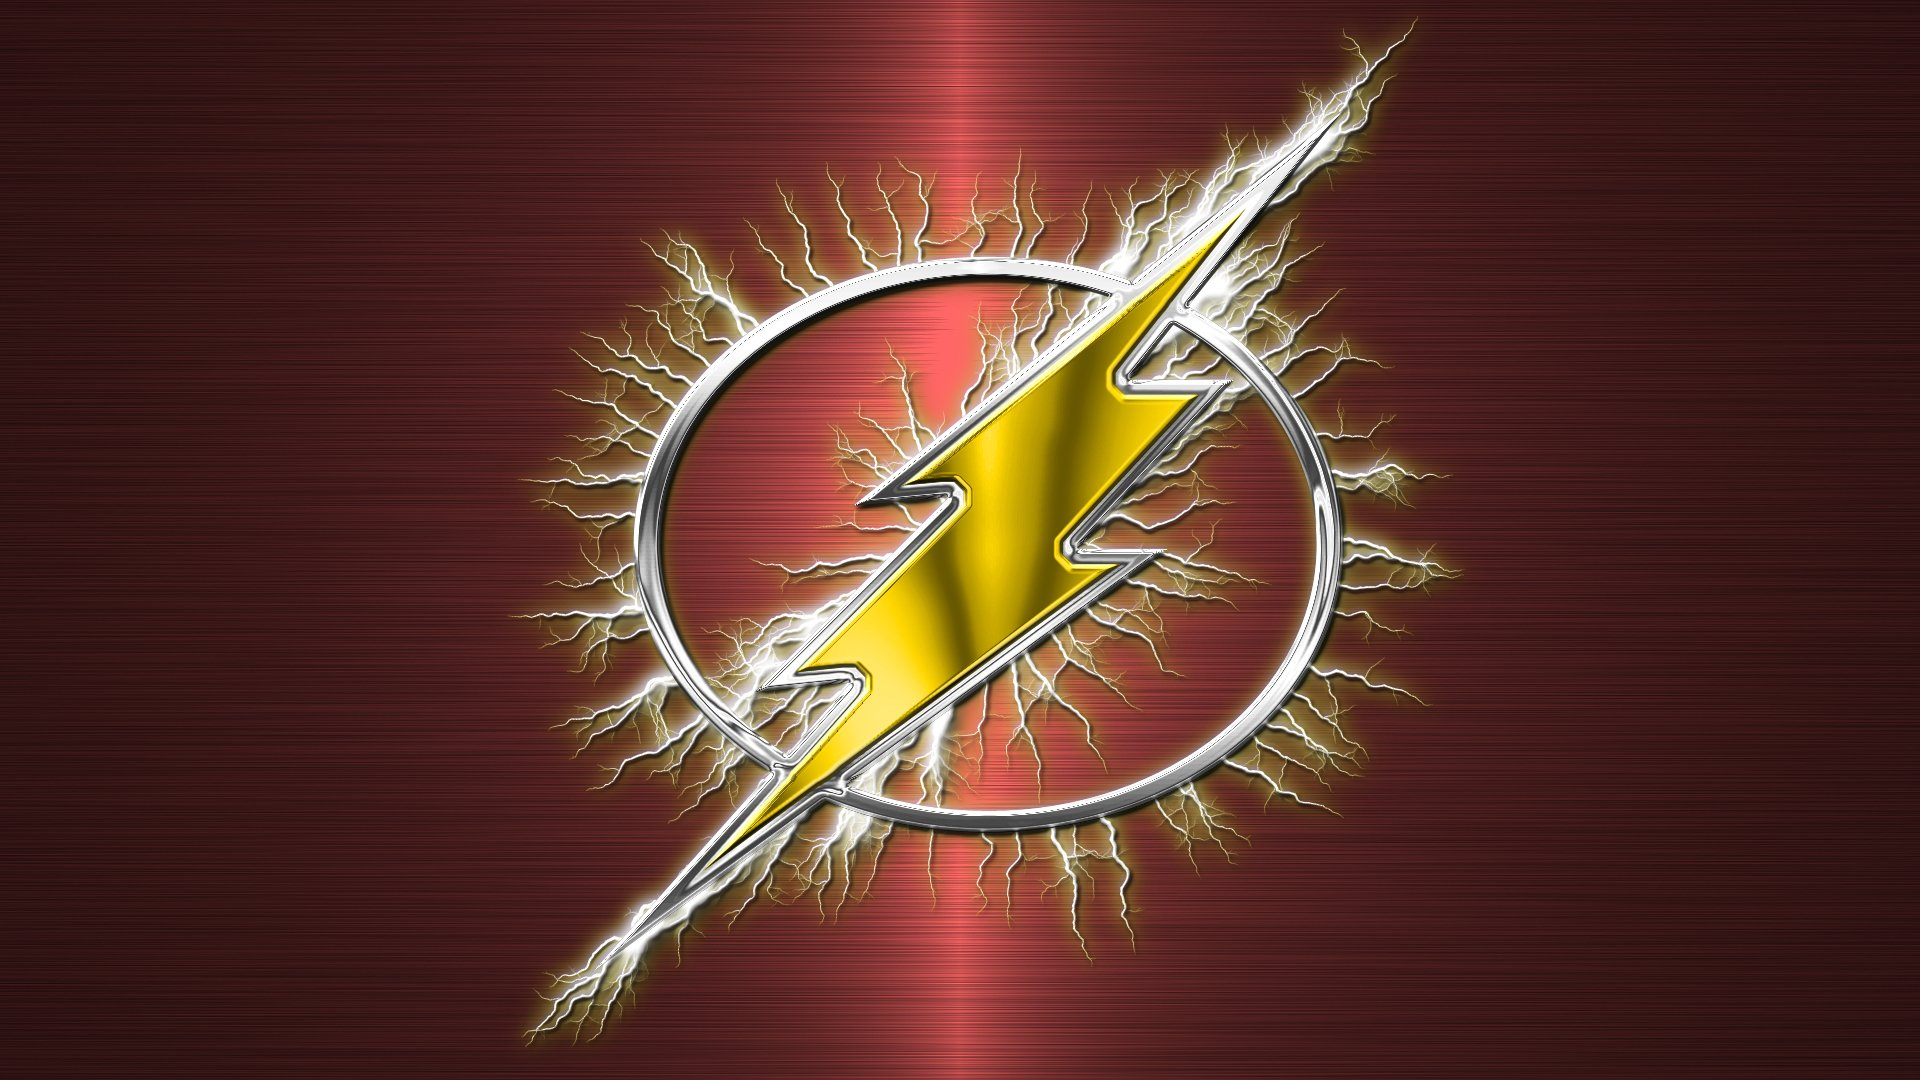 the flash logo wallpaper #10